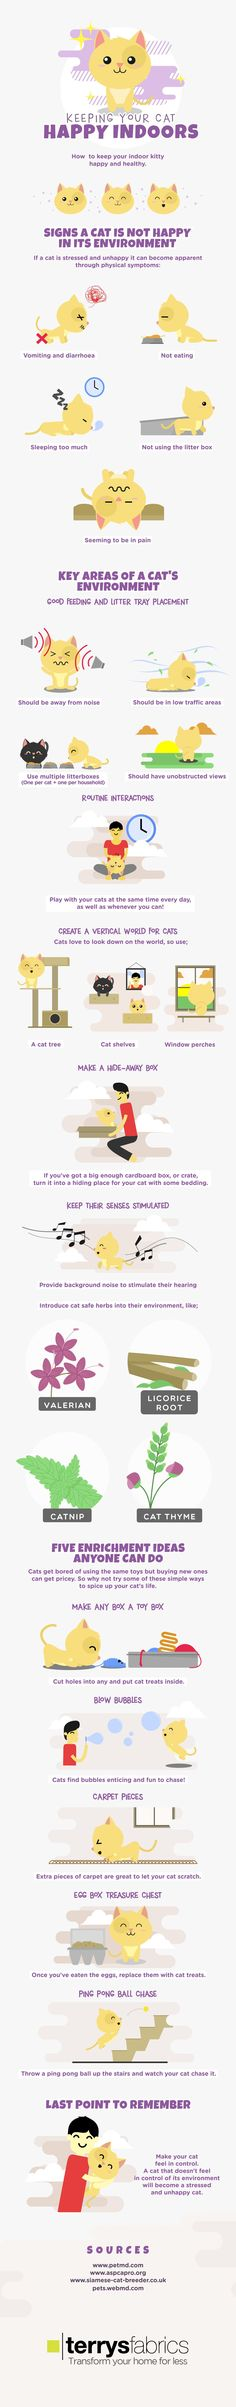 Keeping Your Indoor Cats Happy (Infographic)